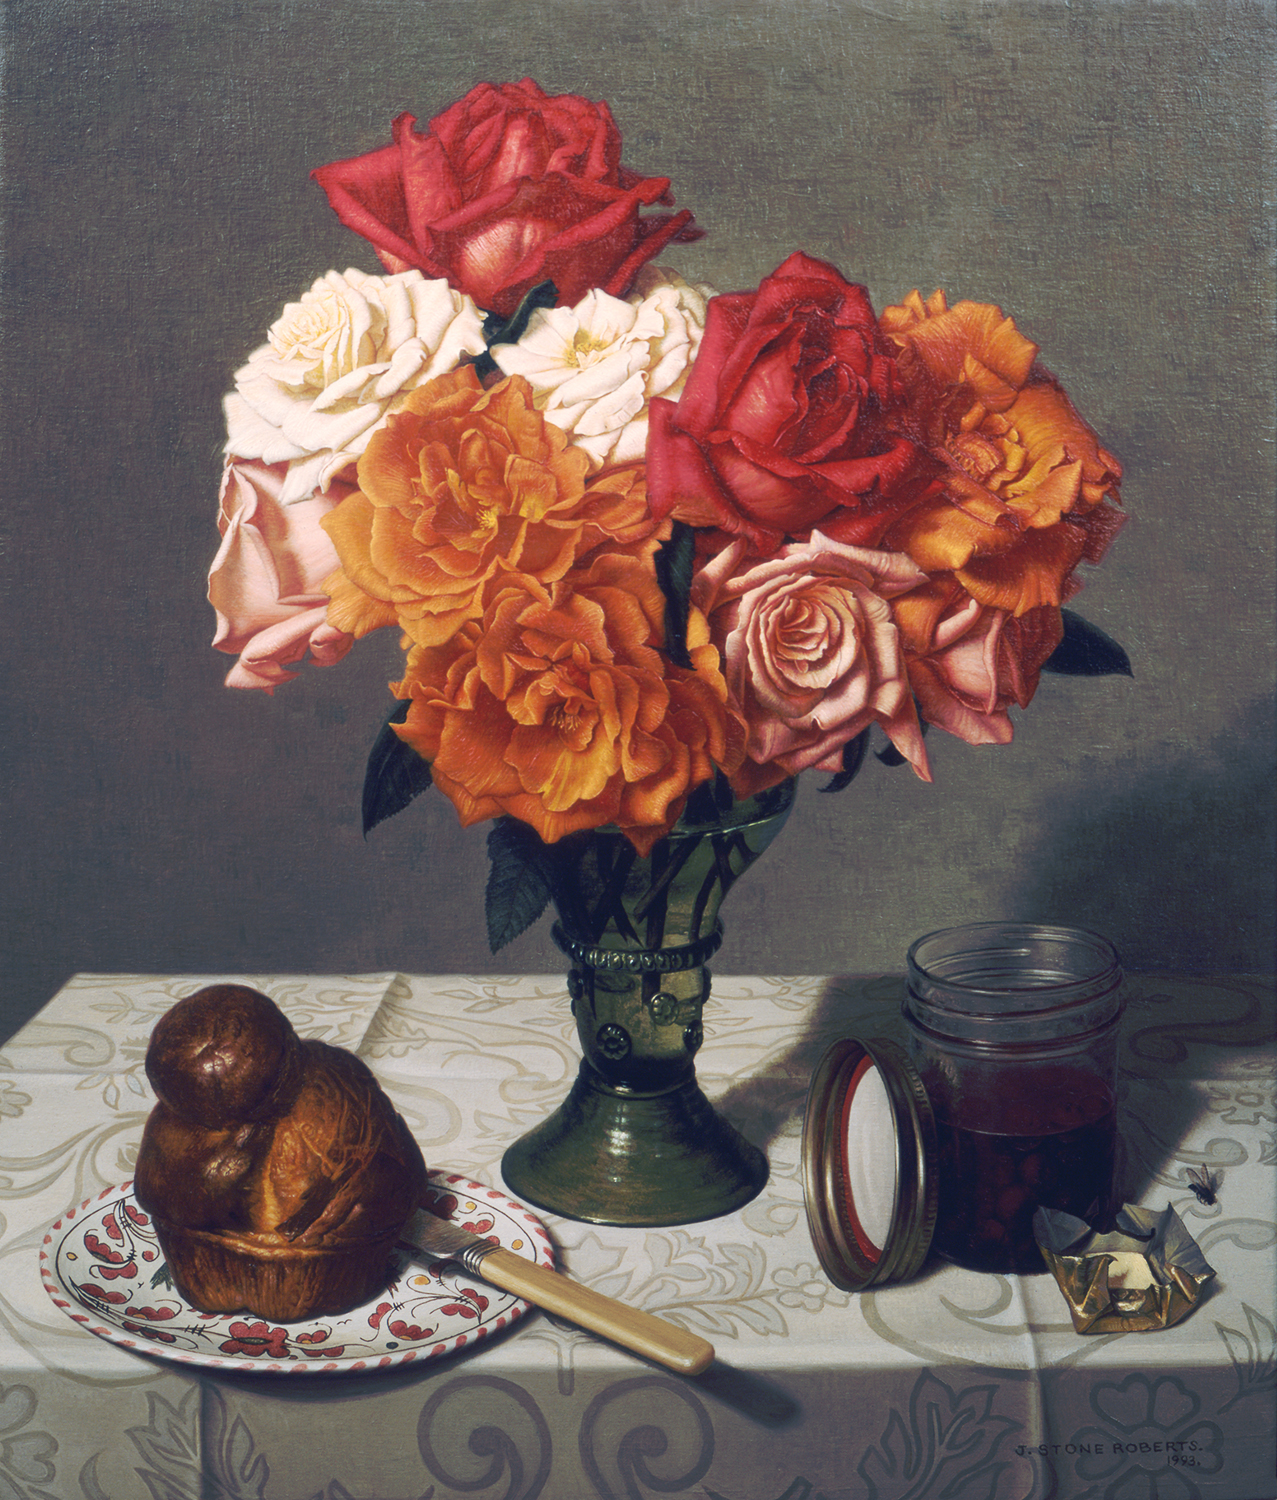 STILL LIFE WITH ROSES AND BRIOCHE (1993)